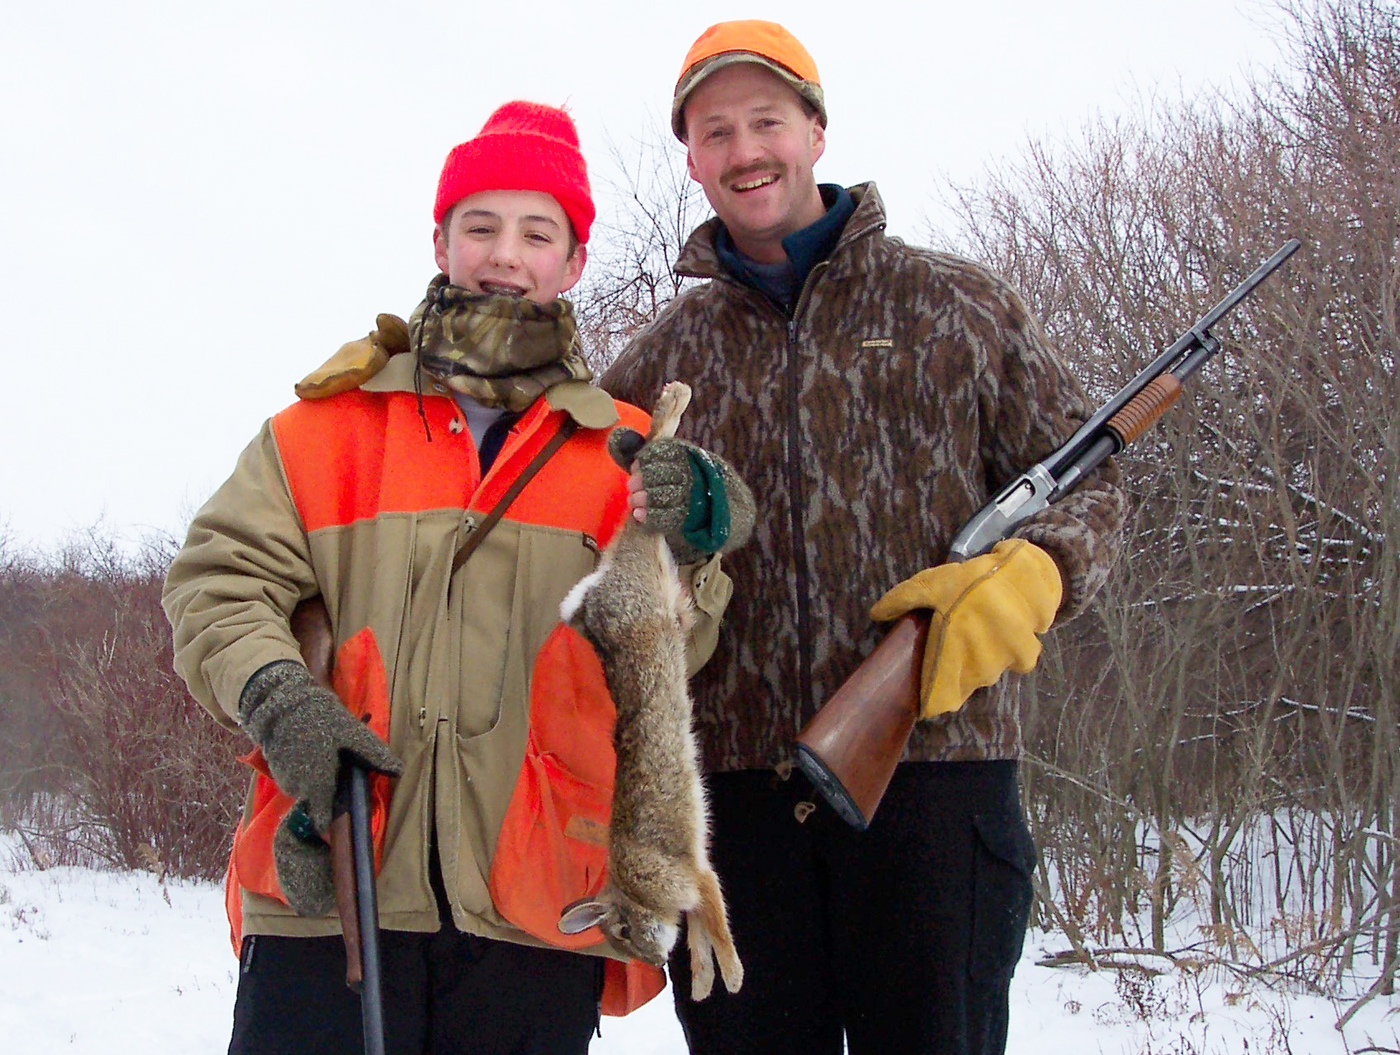 Will Falcheck (former Vet in Hilton and Spencerport) and son Jake with a tasty cottontail. Rabbit hunting with beagles is a great way to get a young hunter started. Provided photo